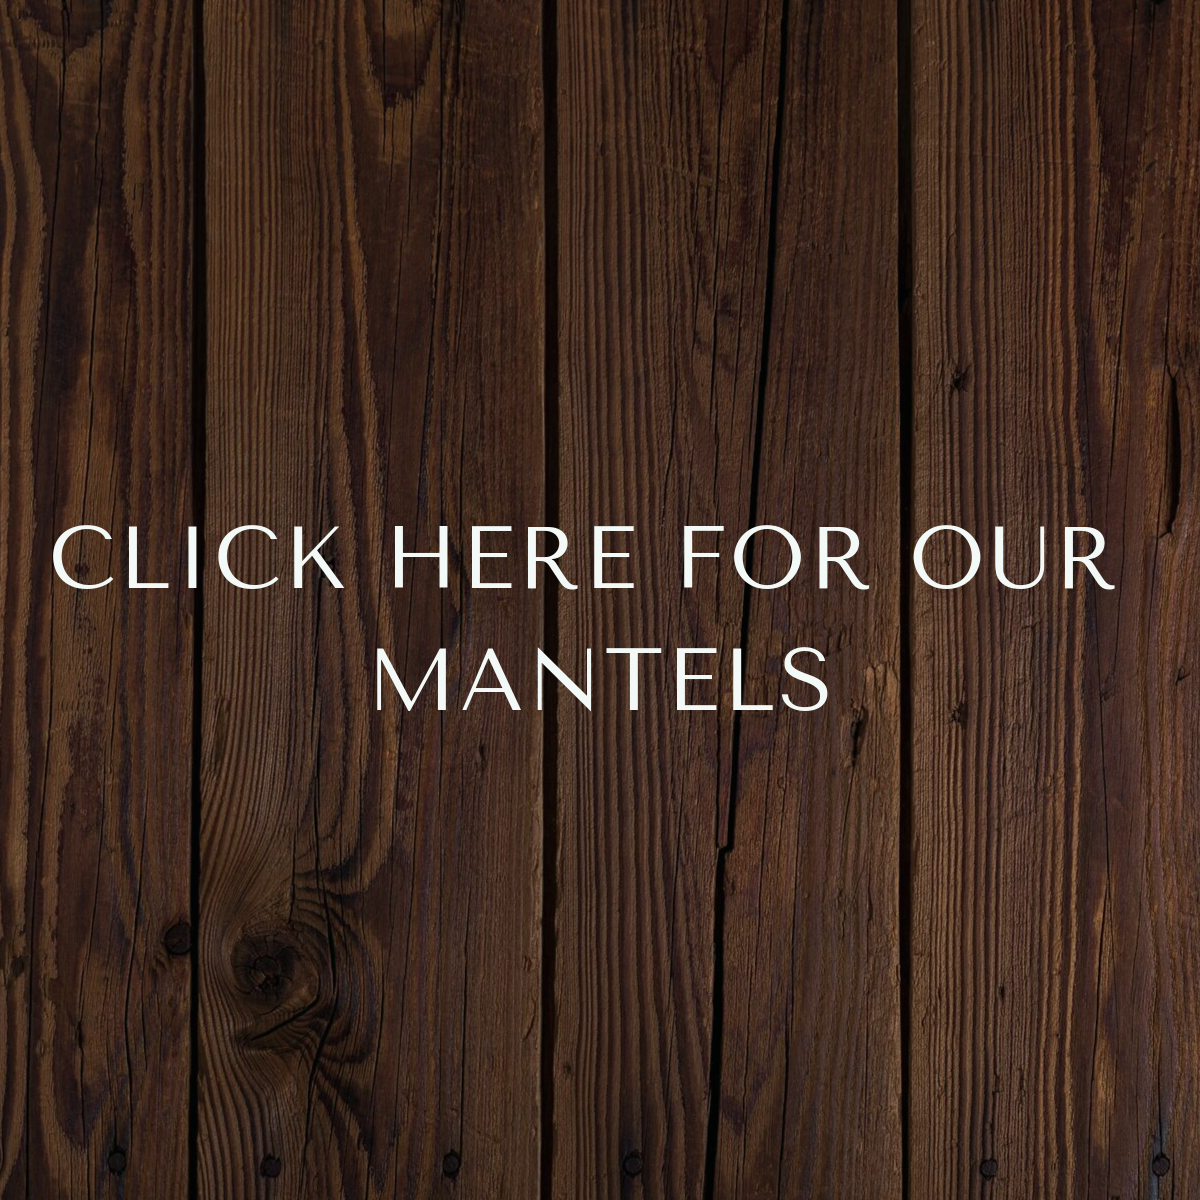 View our mantel inventory